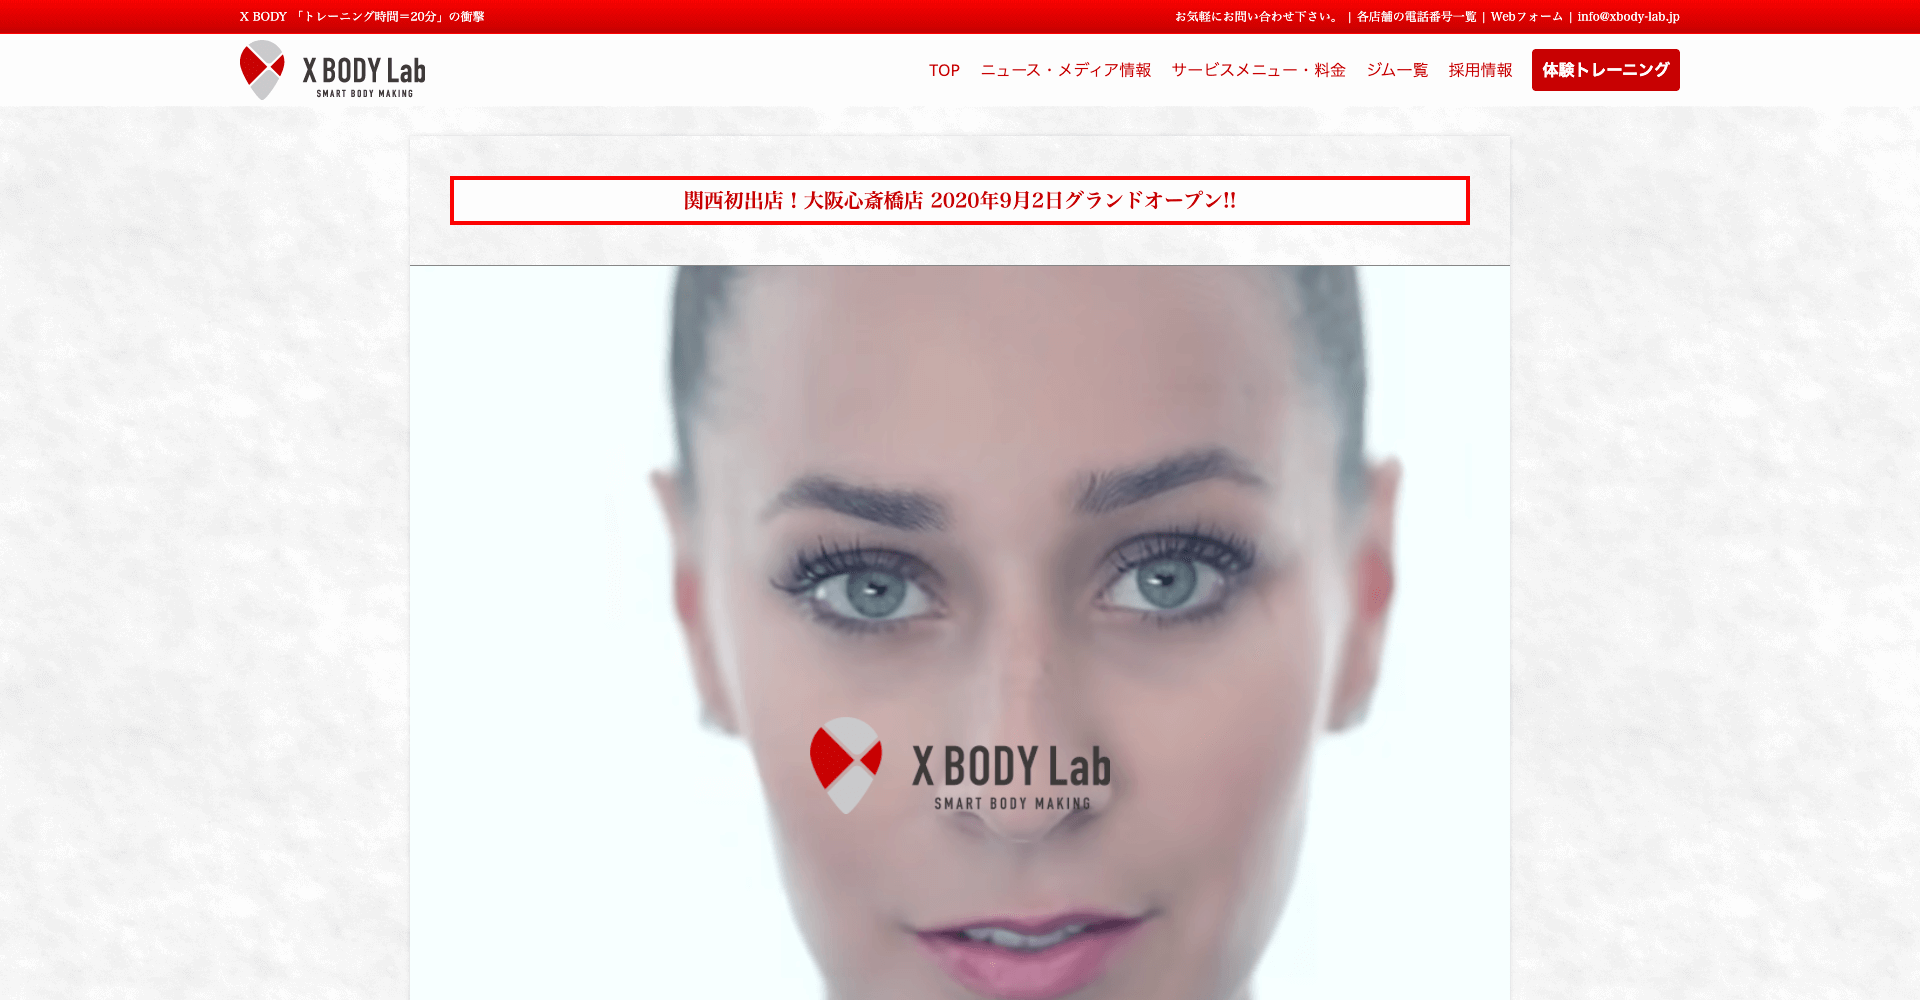 X BODY Lab STATION 三郷